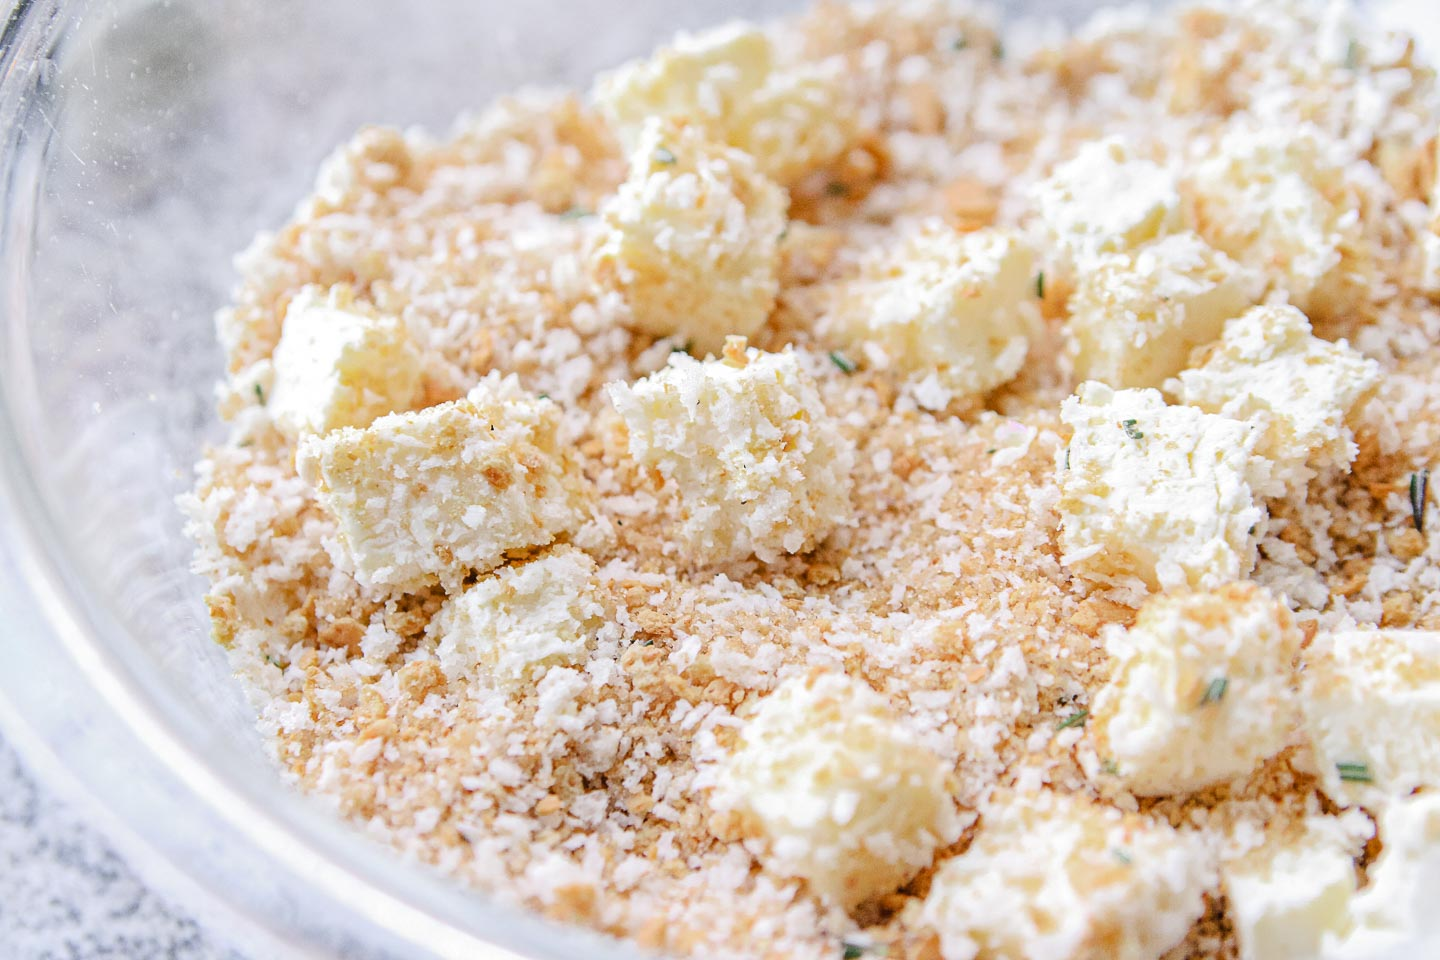 Panko crumb topping in a bowl.